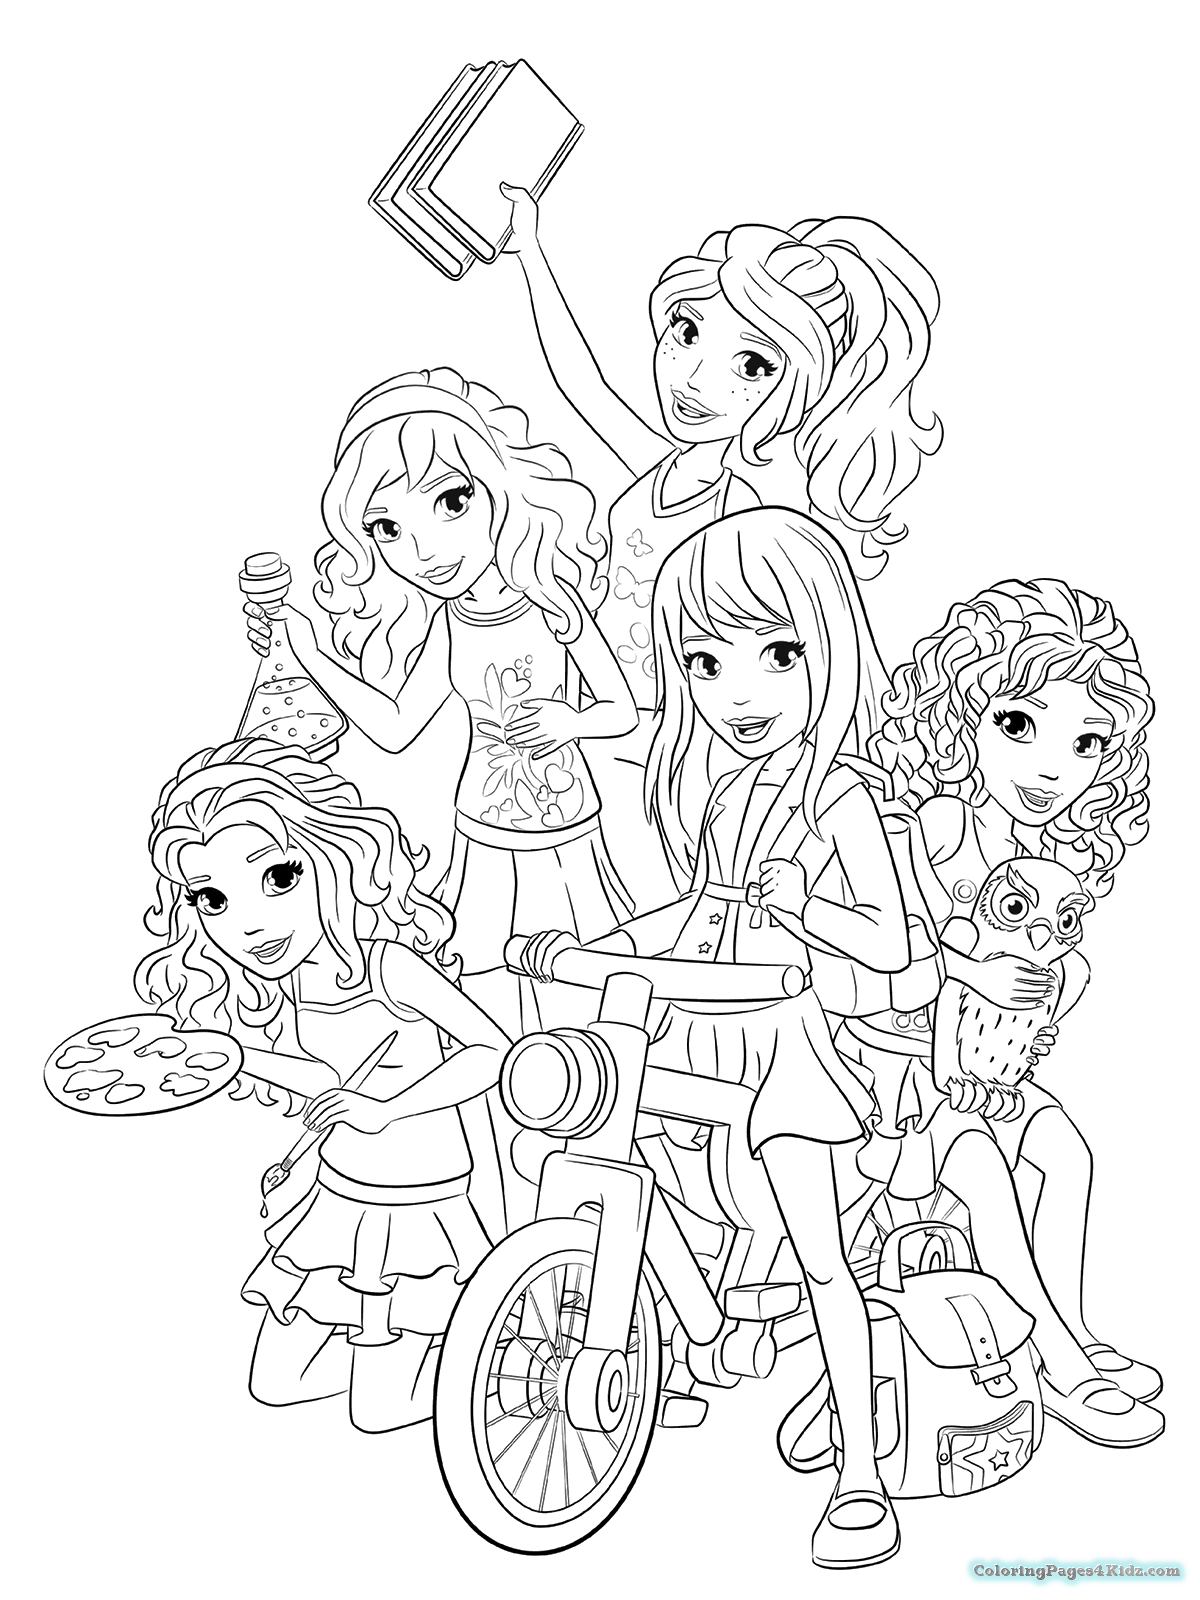 lego friends printable colouring pages 50 lego friends printable coloring pages lego friends friends printable lego colouring pages